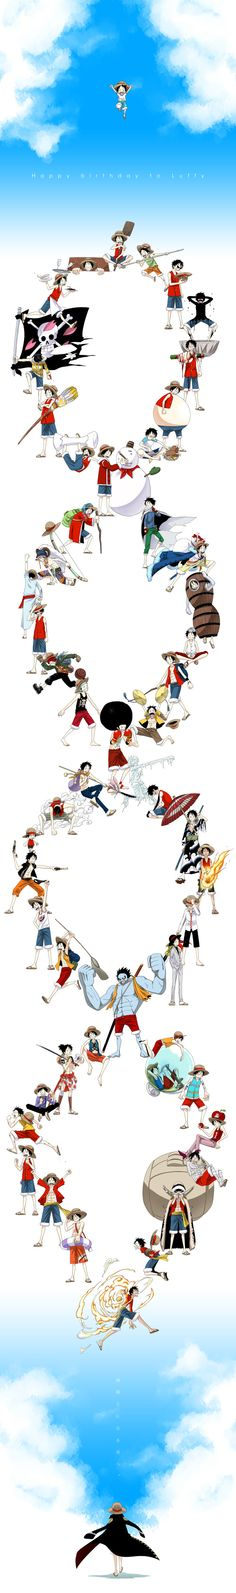 Luffy ONE PIECE collected by Bugster B and make your own Anime album. One Piece Anime, One Piece Luffy, Zoro, Otaku, Manga Anime, The Pirate King, One Peace, One Piece Pictures, Fanart